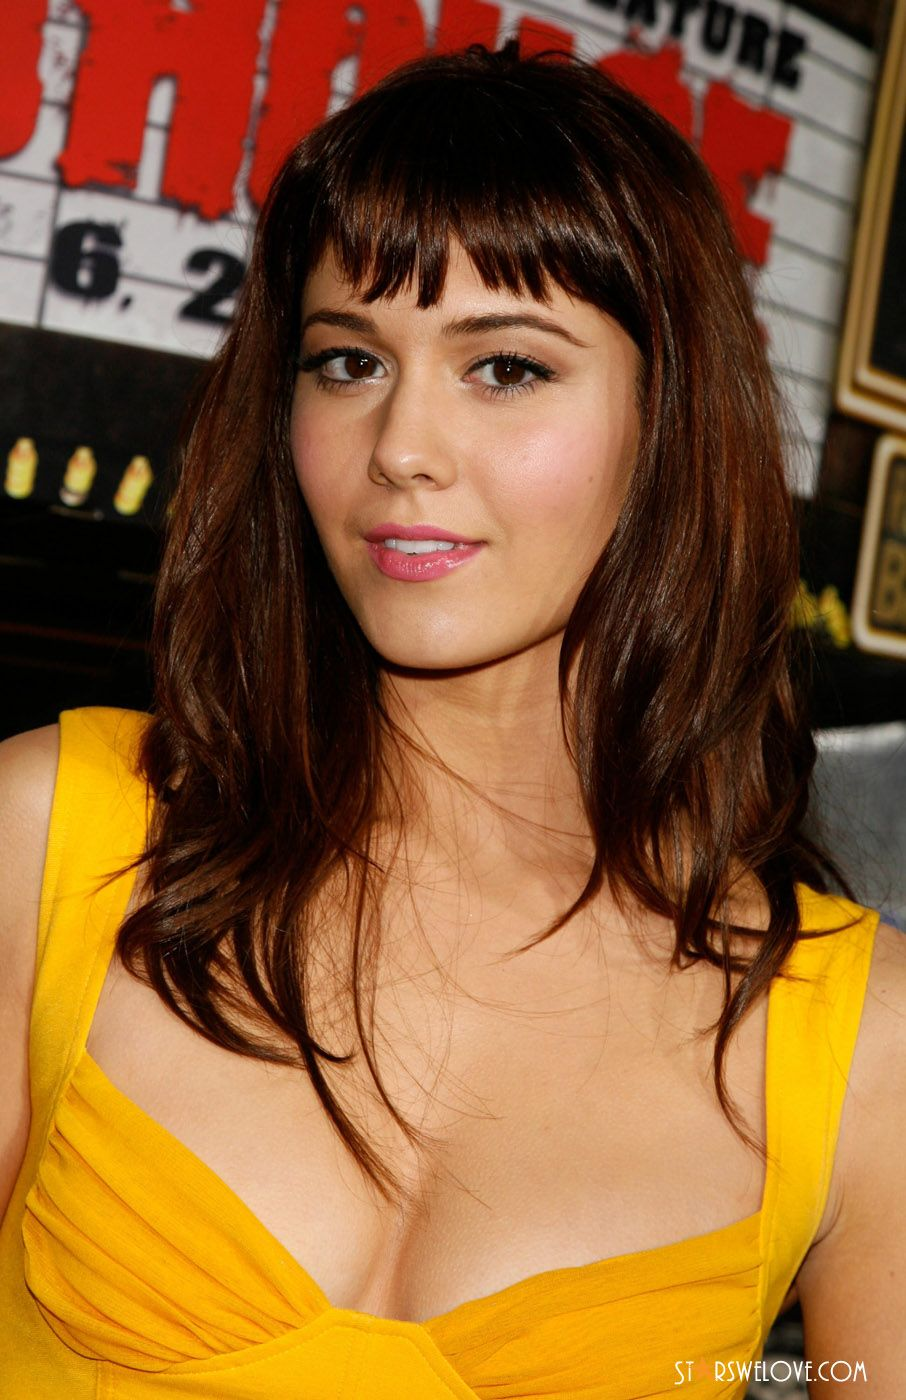 Mary Elizabeth Winstead Some Like It Hot Pinterest